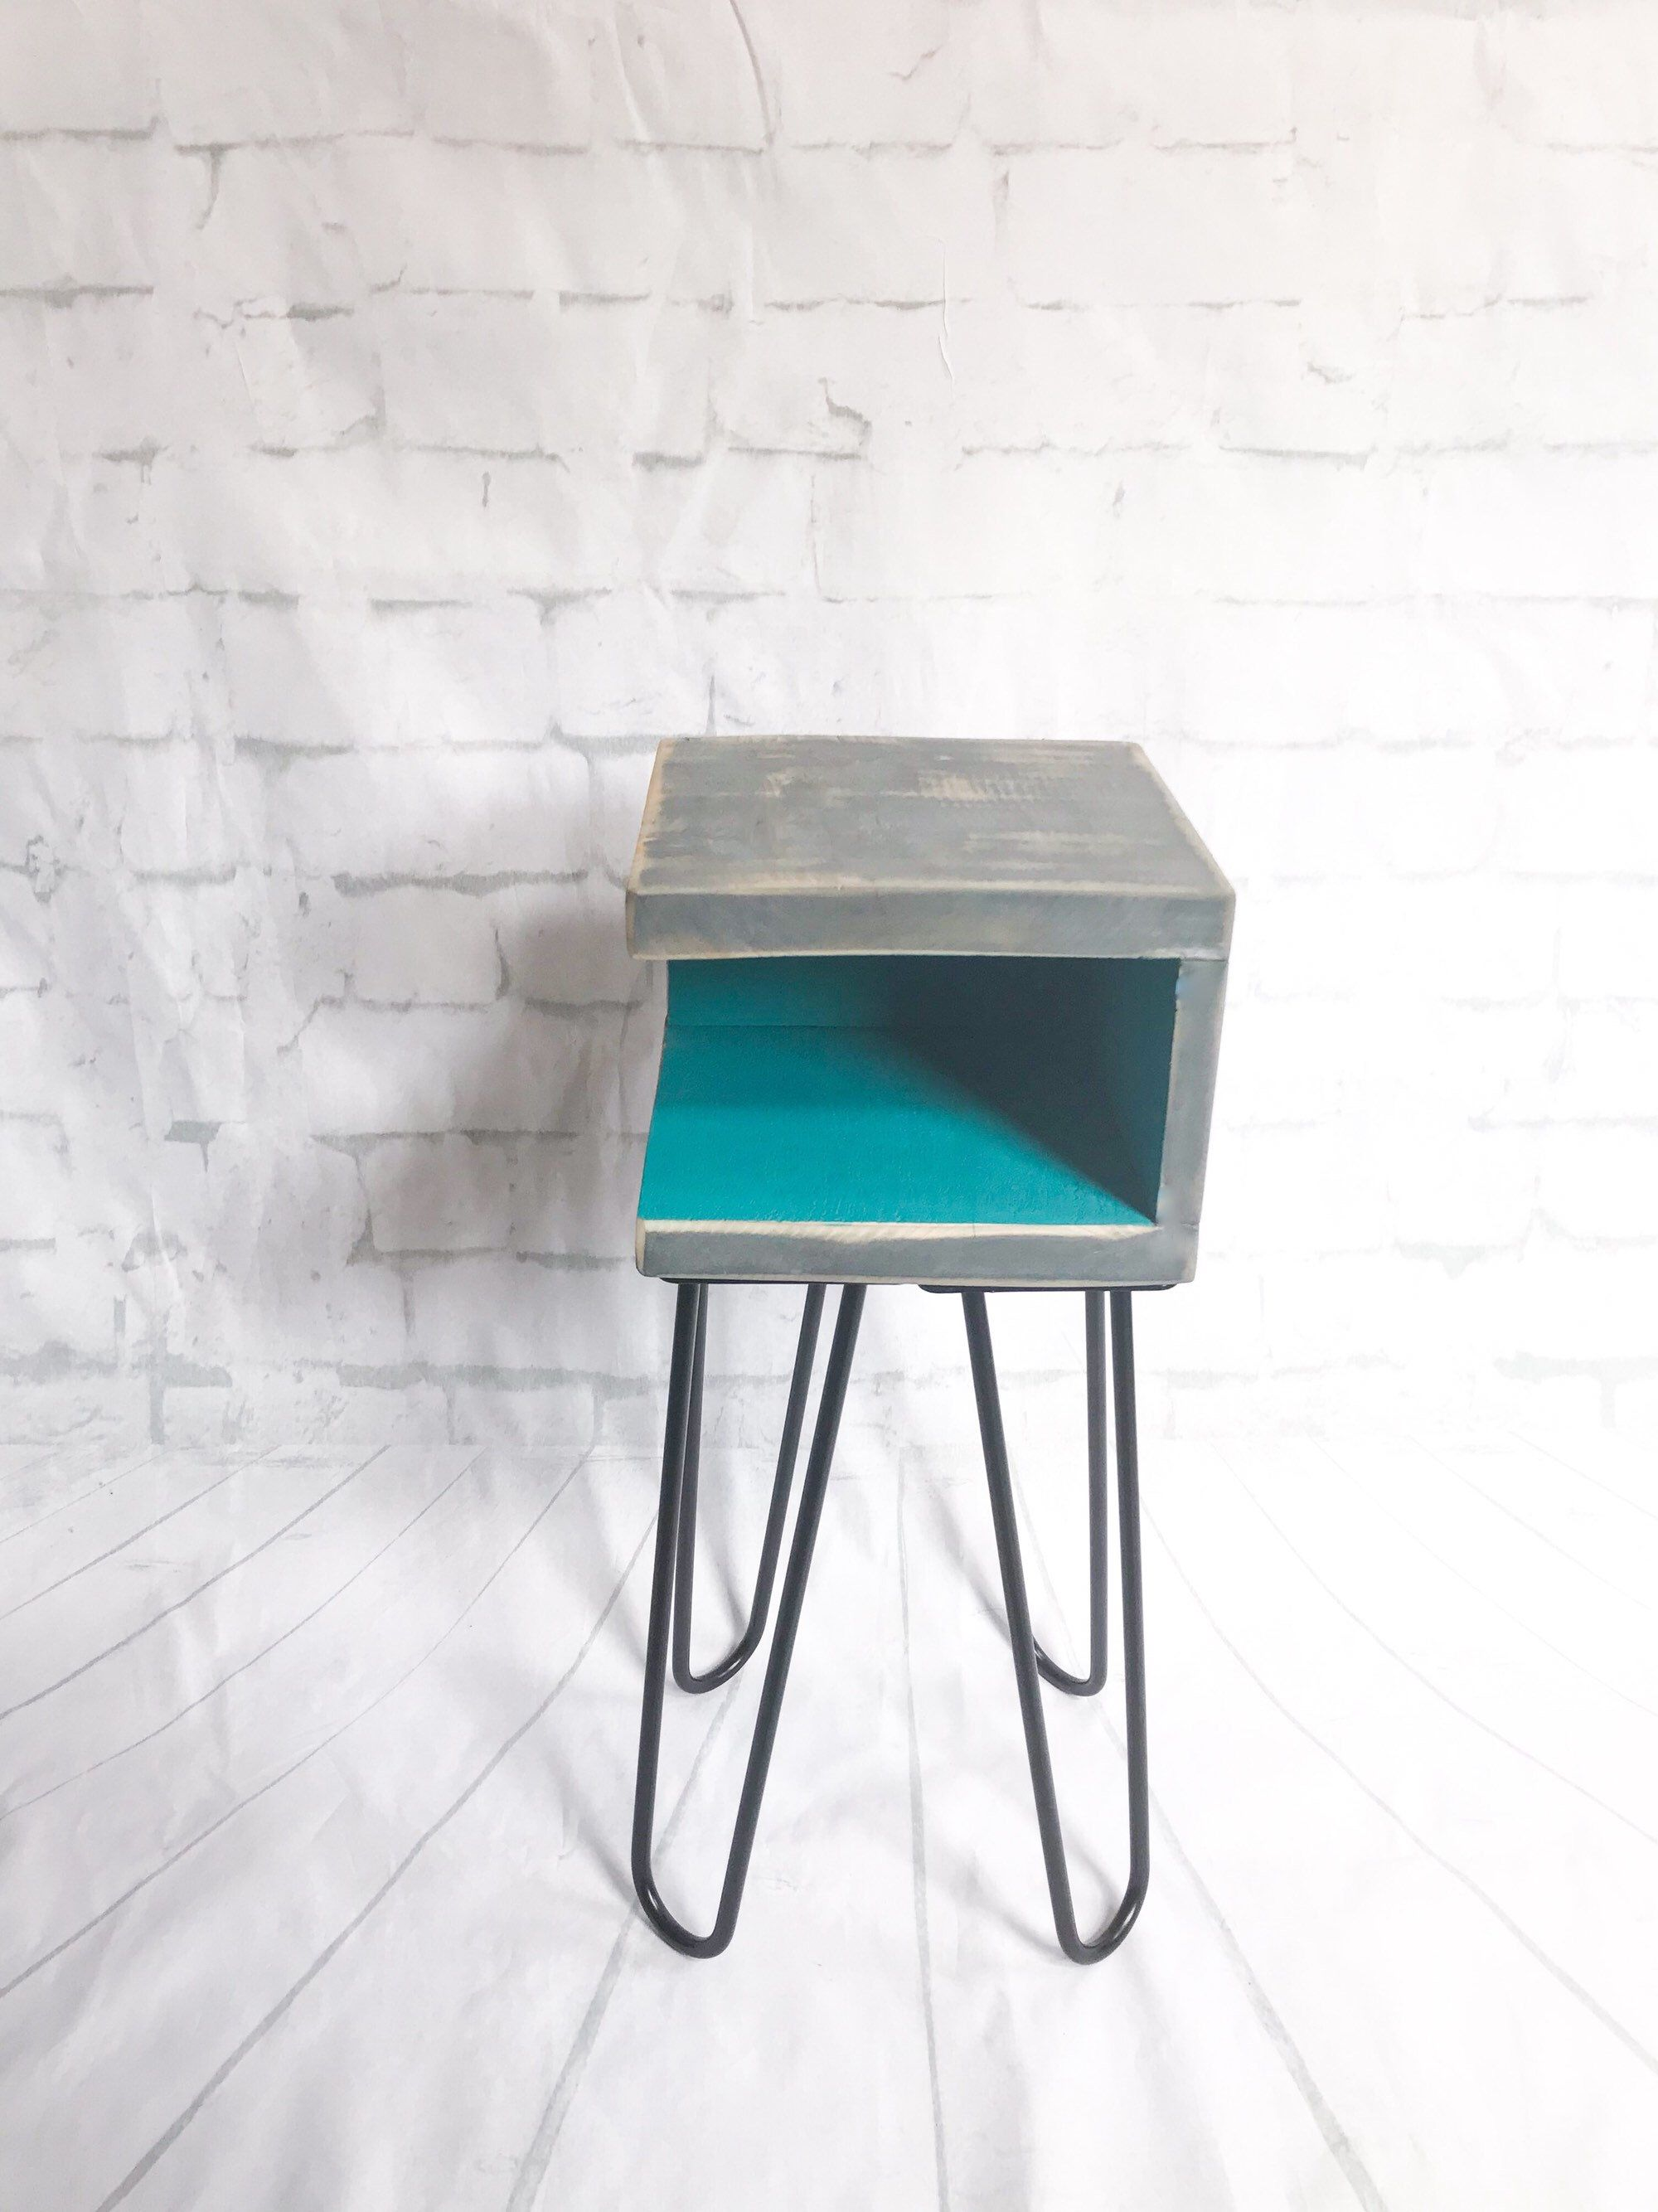 handmade nightstand modern mid century rustic retro small teal blue accent table side end tables midcentury hairpin distressed reclaimed barn wood coffee console with shelves and